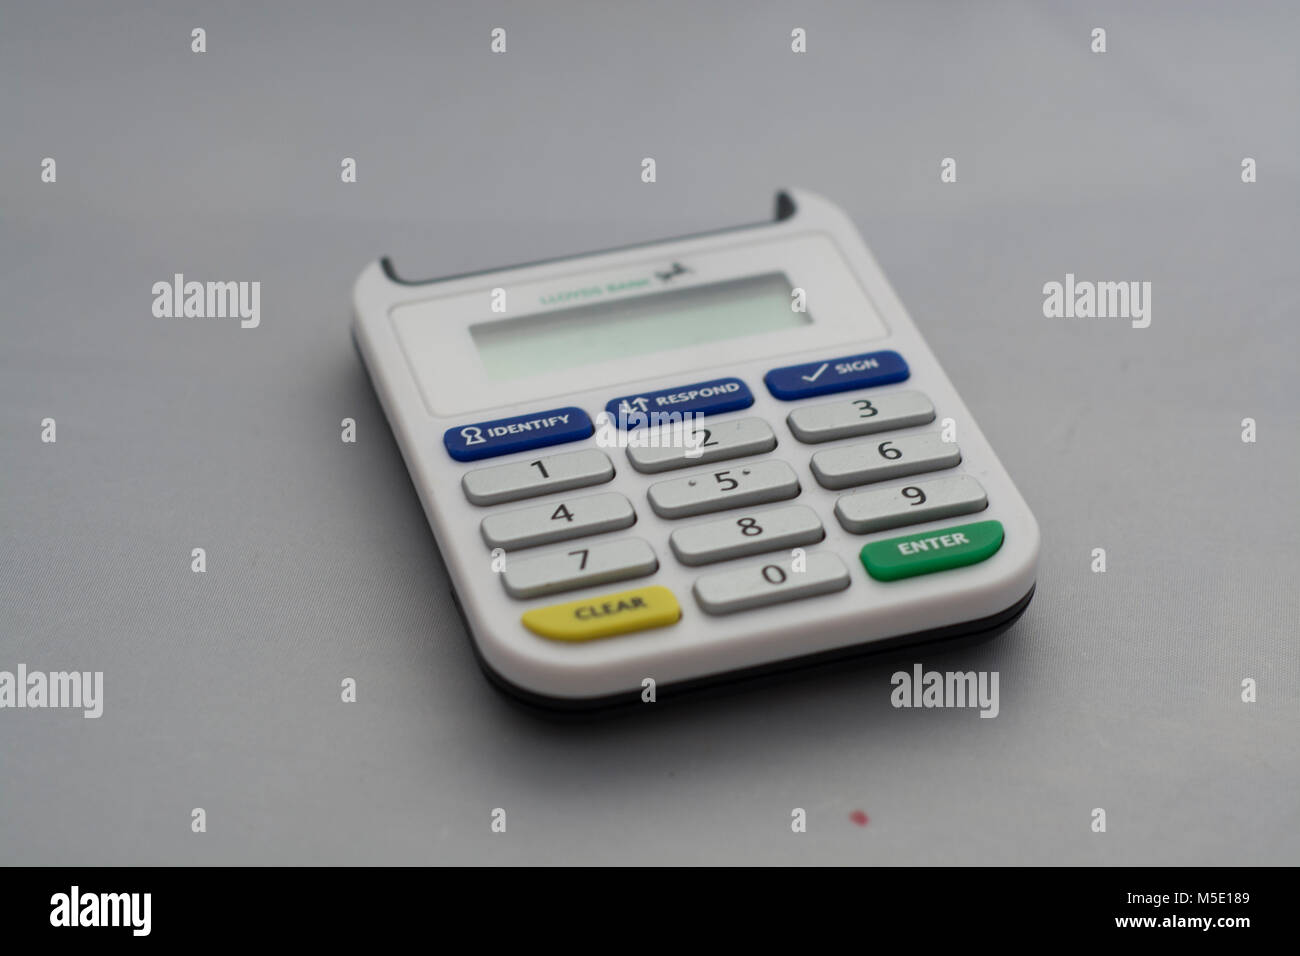 A card reader used in online banking - Stock Image